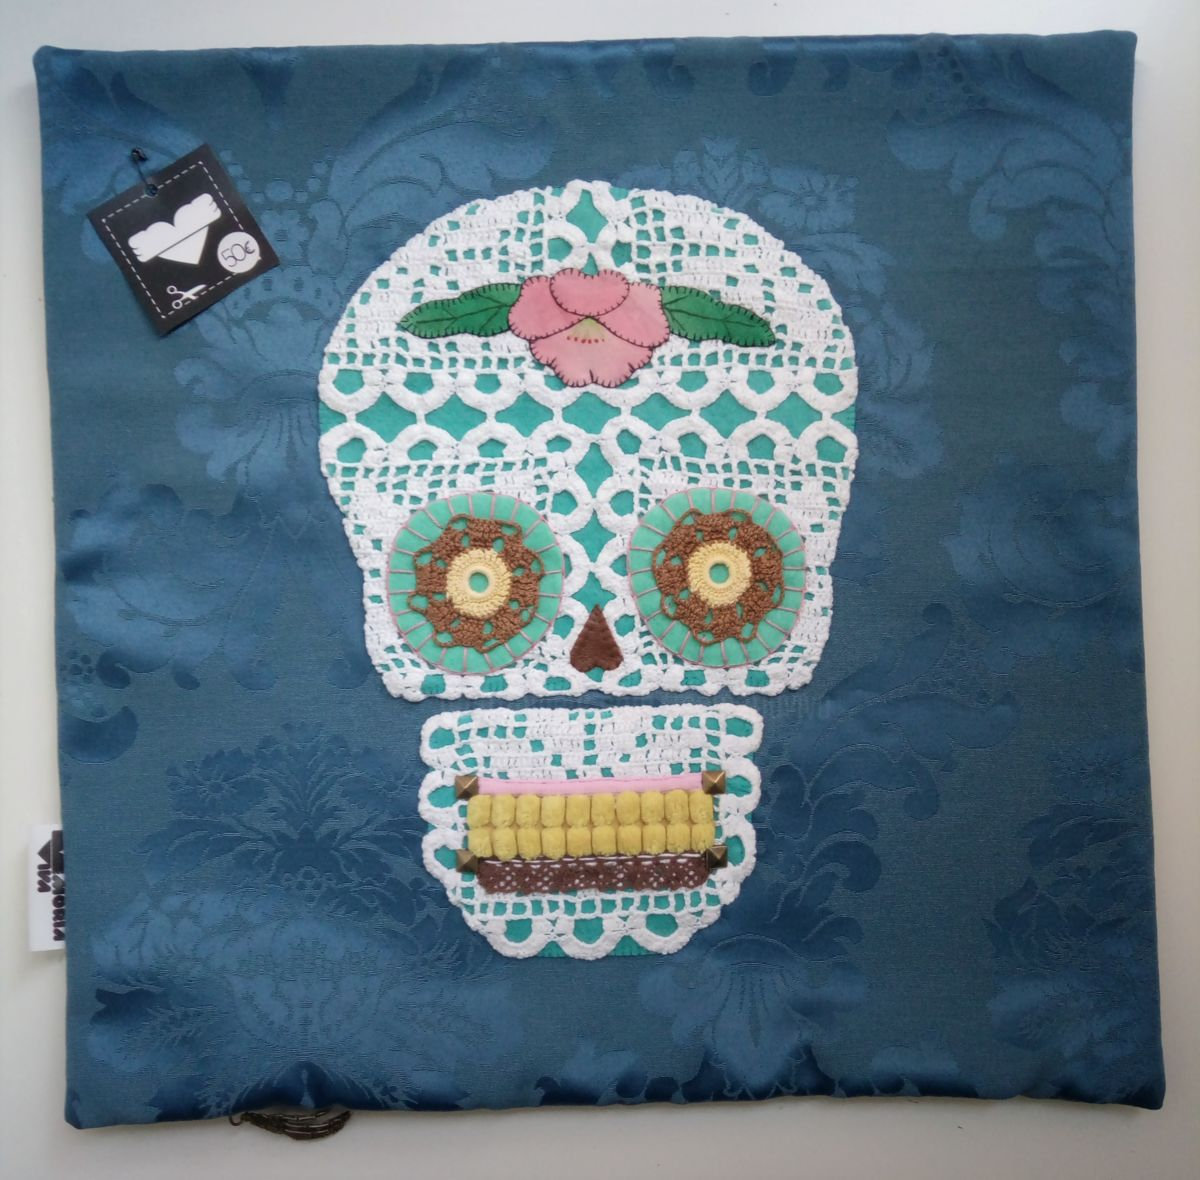 Unique Handstiched Mexican Skull Pillow Case - Mixed Media ©2018 by Memória Viva -            memoria viva